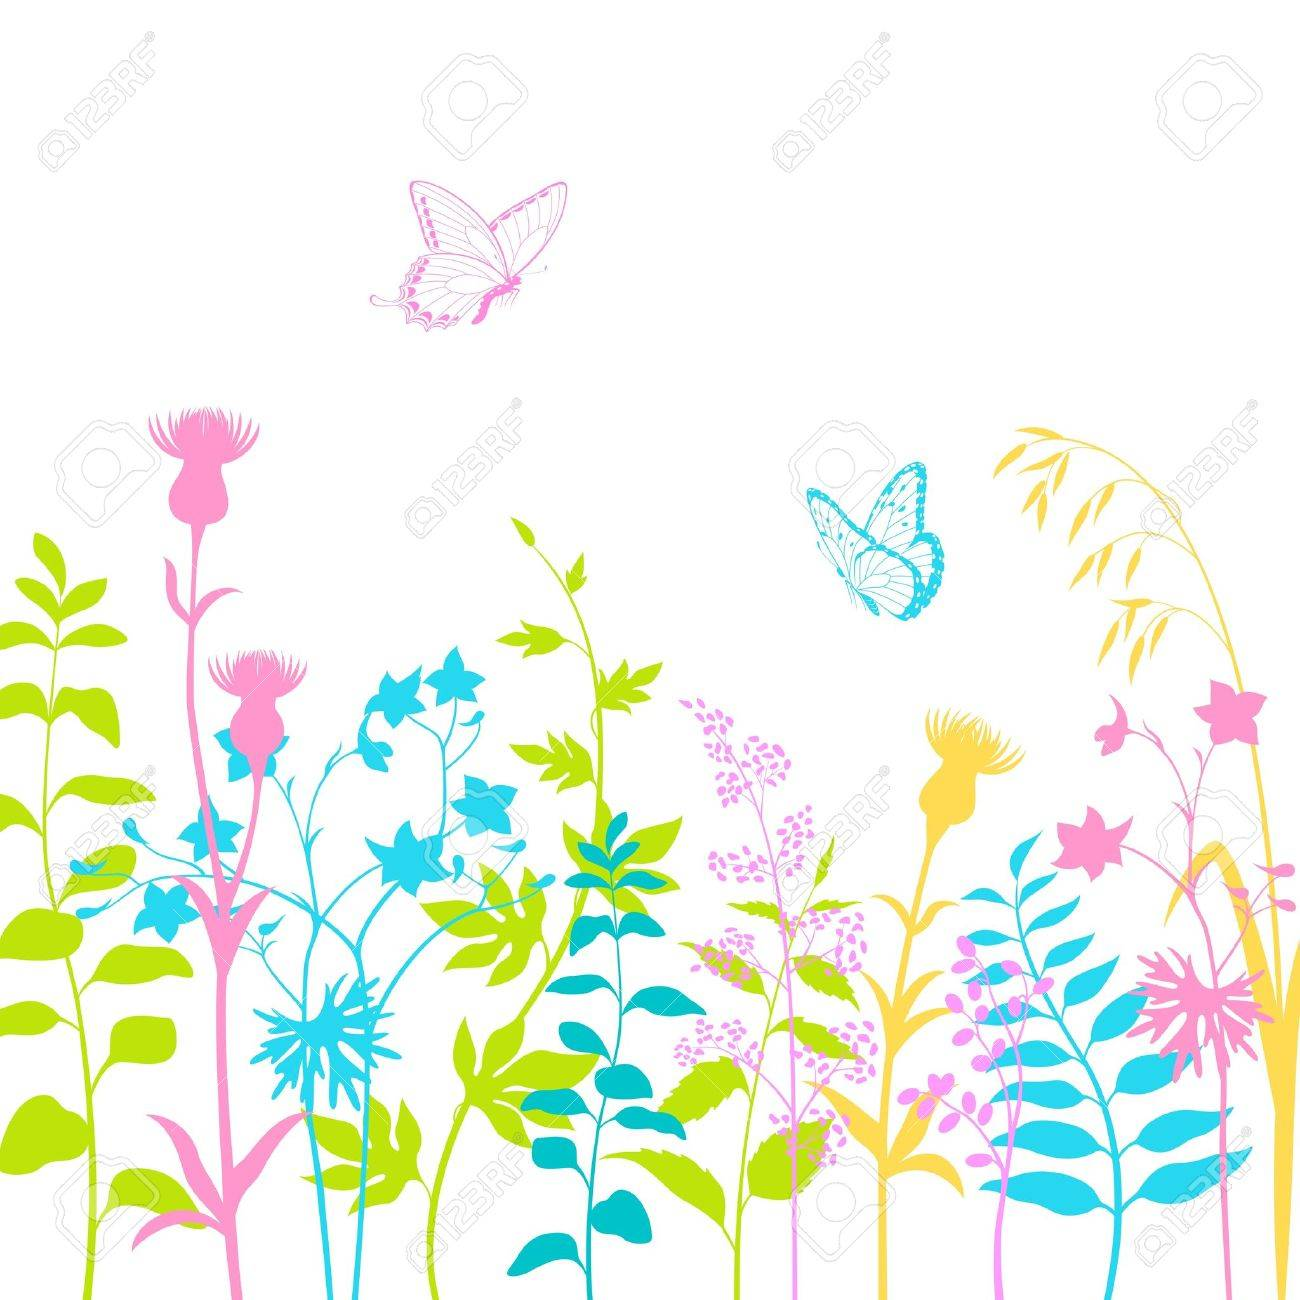 Colorful floral design with butterflies and multicolored  herb silhouettes. Stock Vector - 14085250